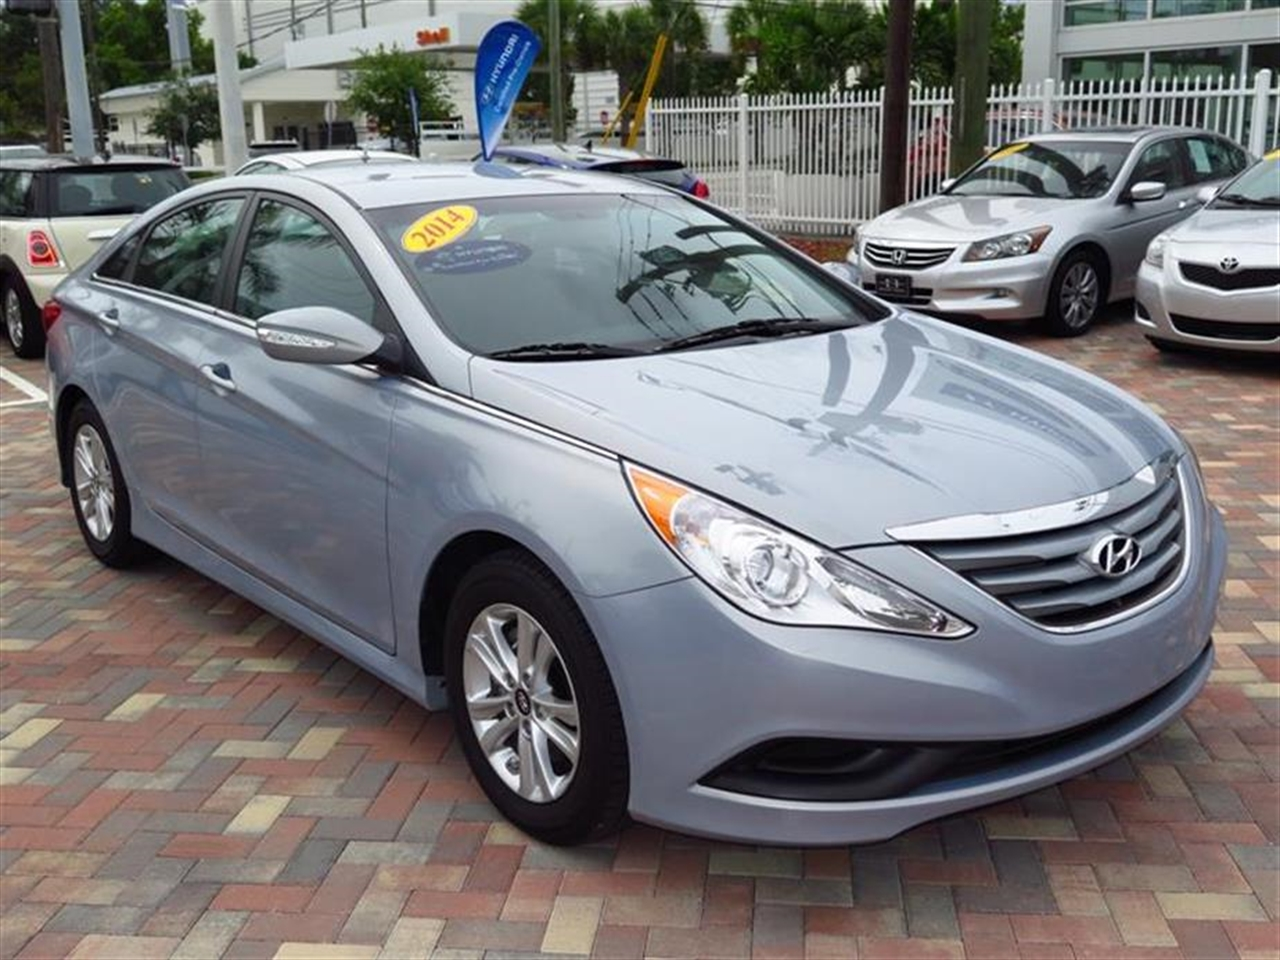 2014 HYUN SONATA 4dr Sdn 24L Auto GLS 9745 miles 2 12V DC Power Outlets 5 Person Seating Capaci